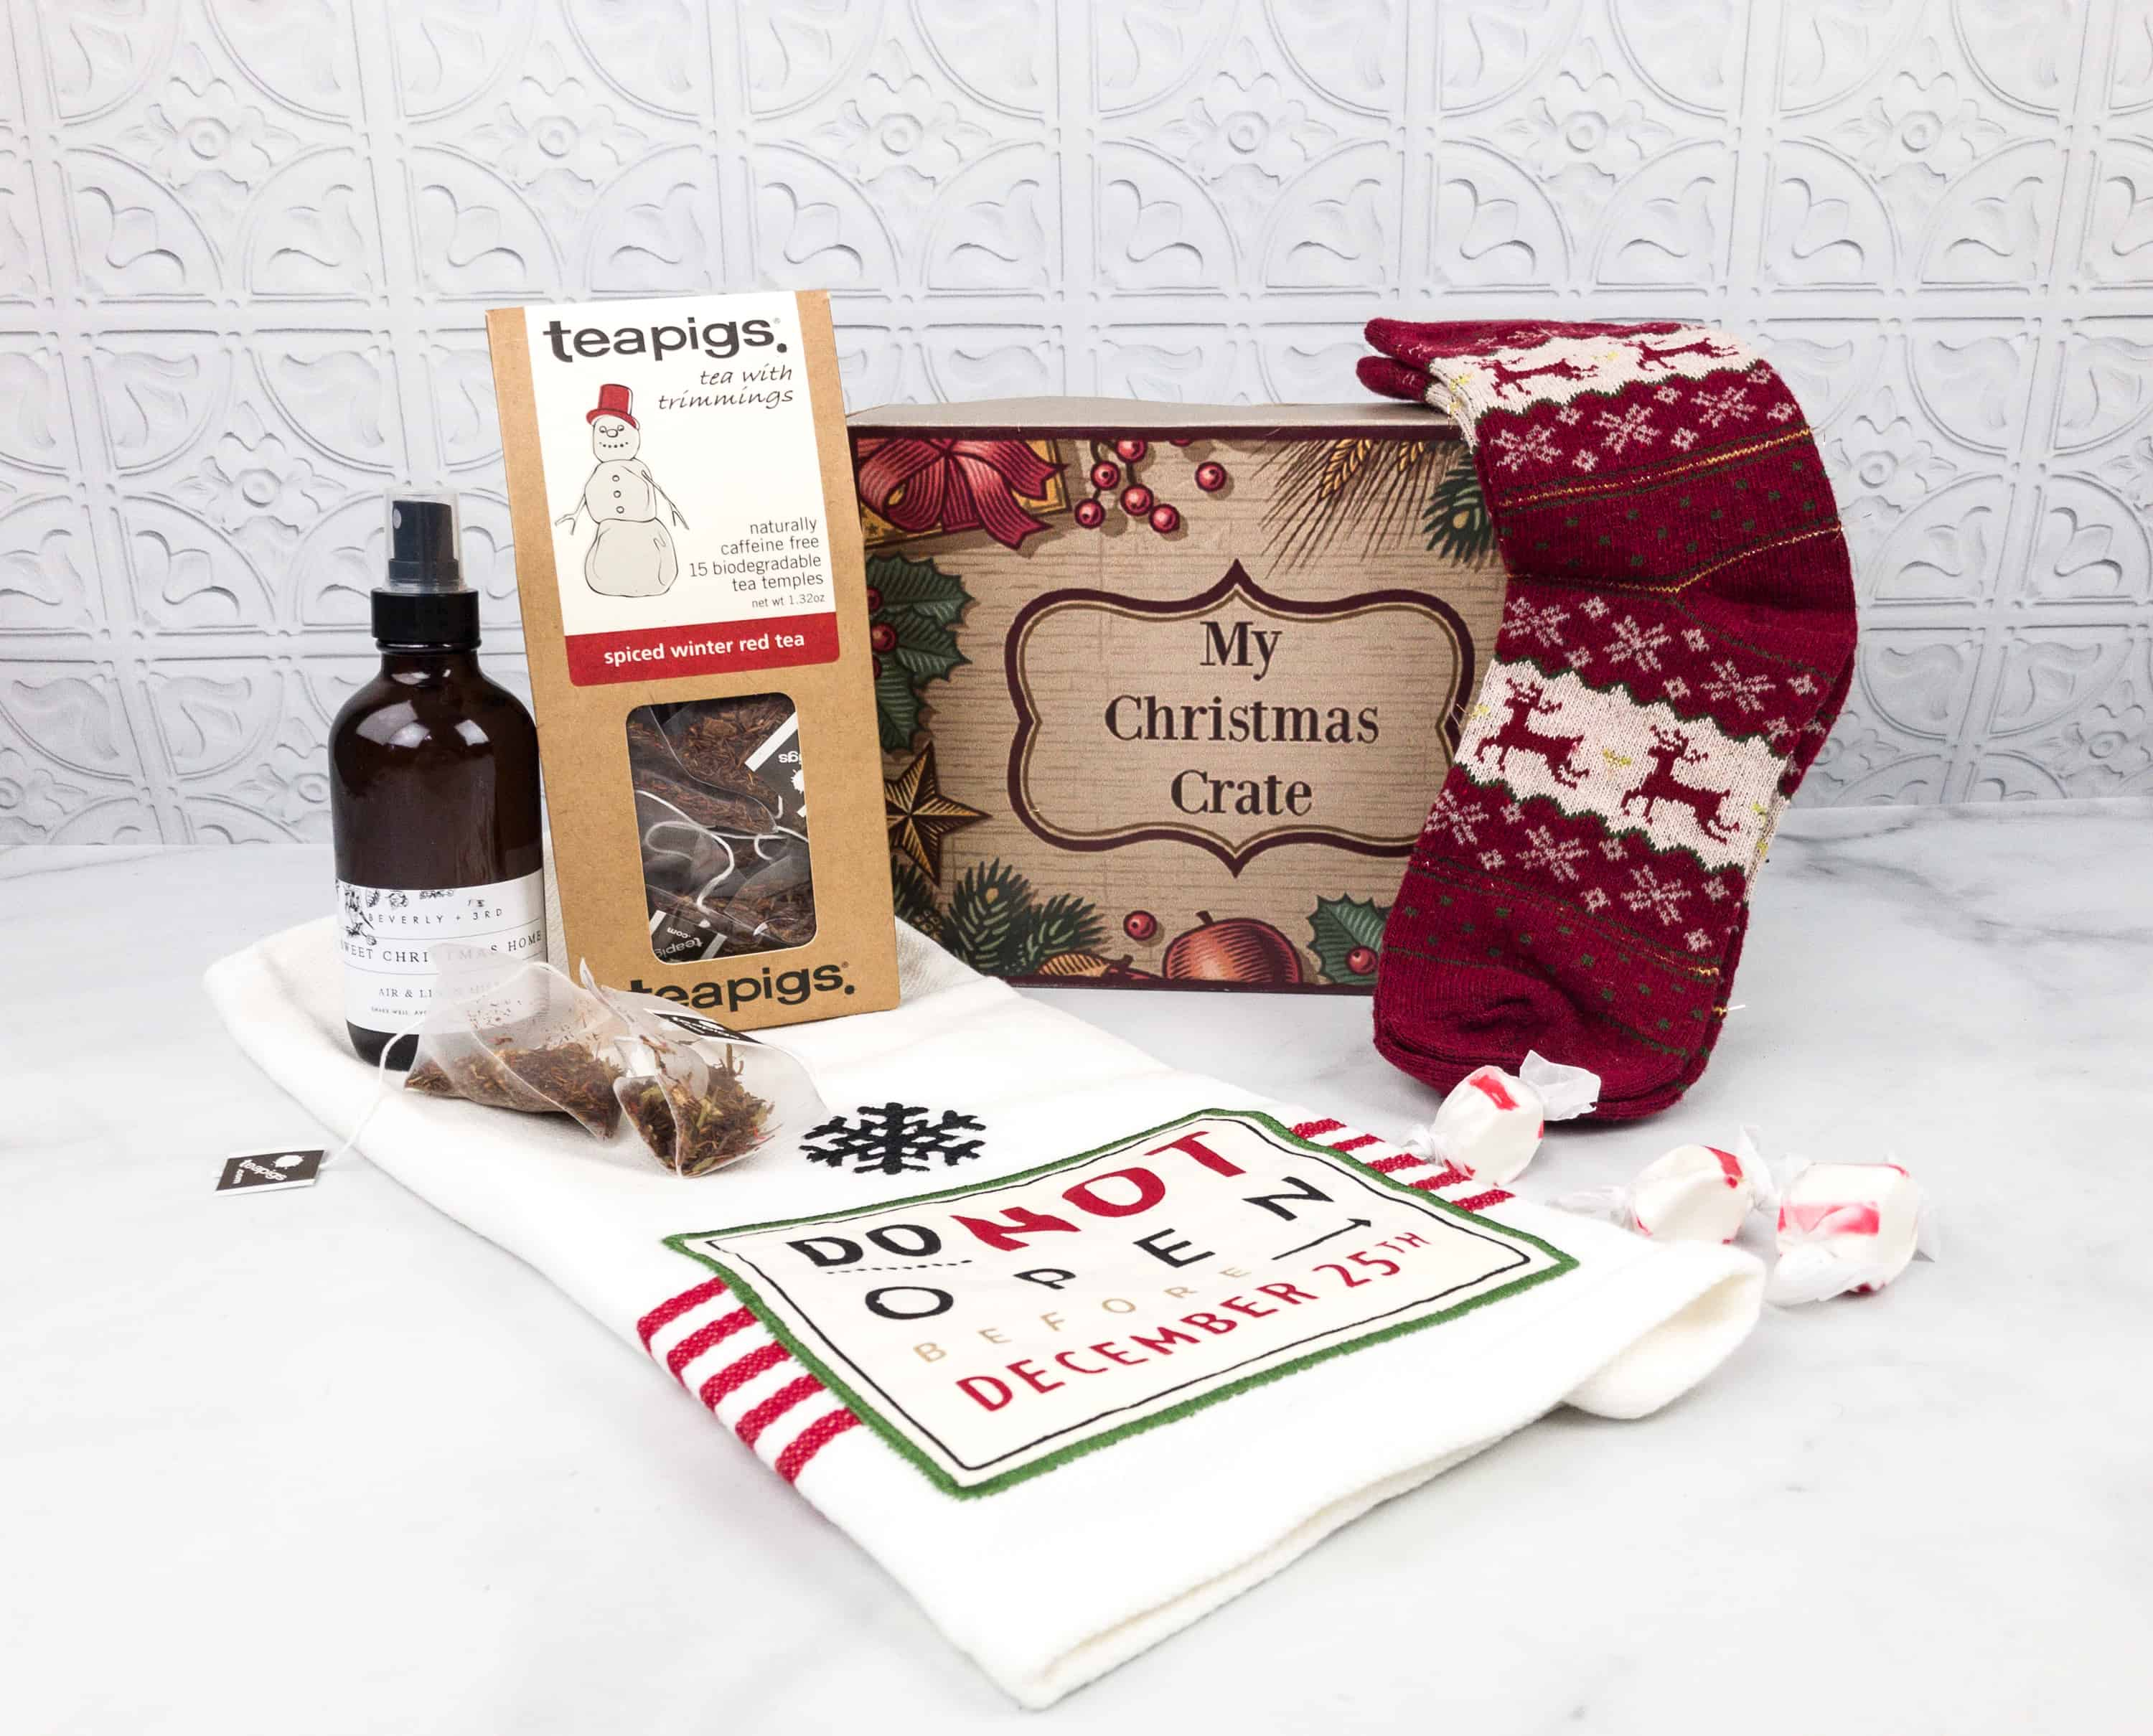 Christmas Crate Box.My Christmas Crate March 2018 Subscription Box Review